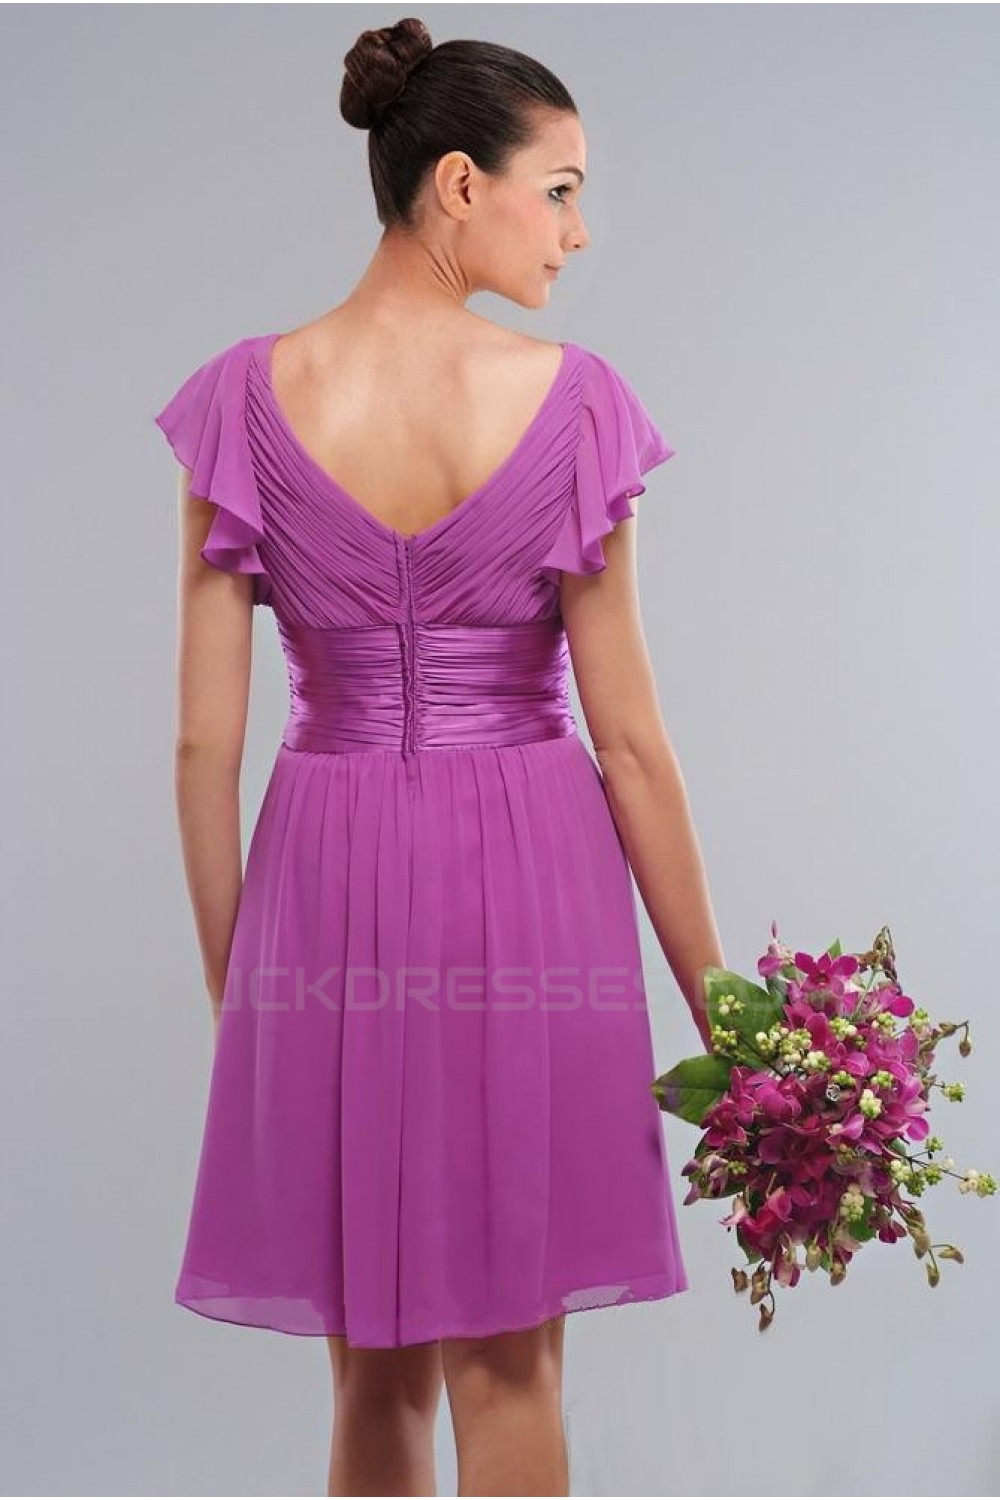 Aline Short Purple Kneelength Bridesmaid Dresseswedding Party Dresses Bd010405: Magenta Short Wedding Dresses At Websimilar.org